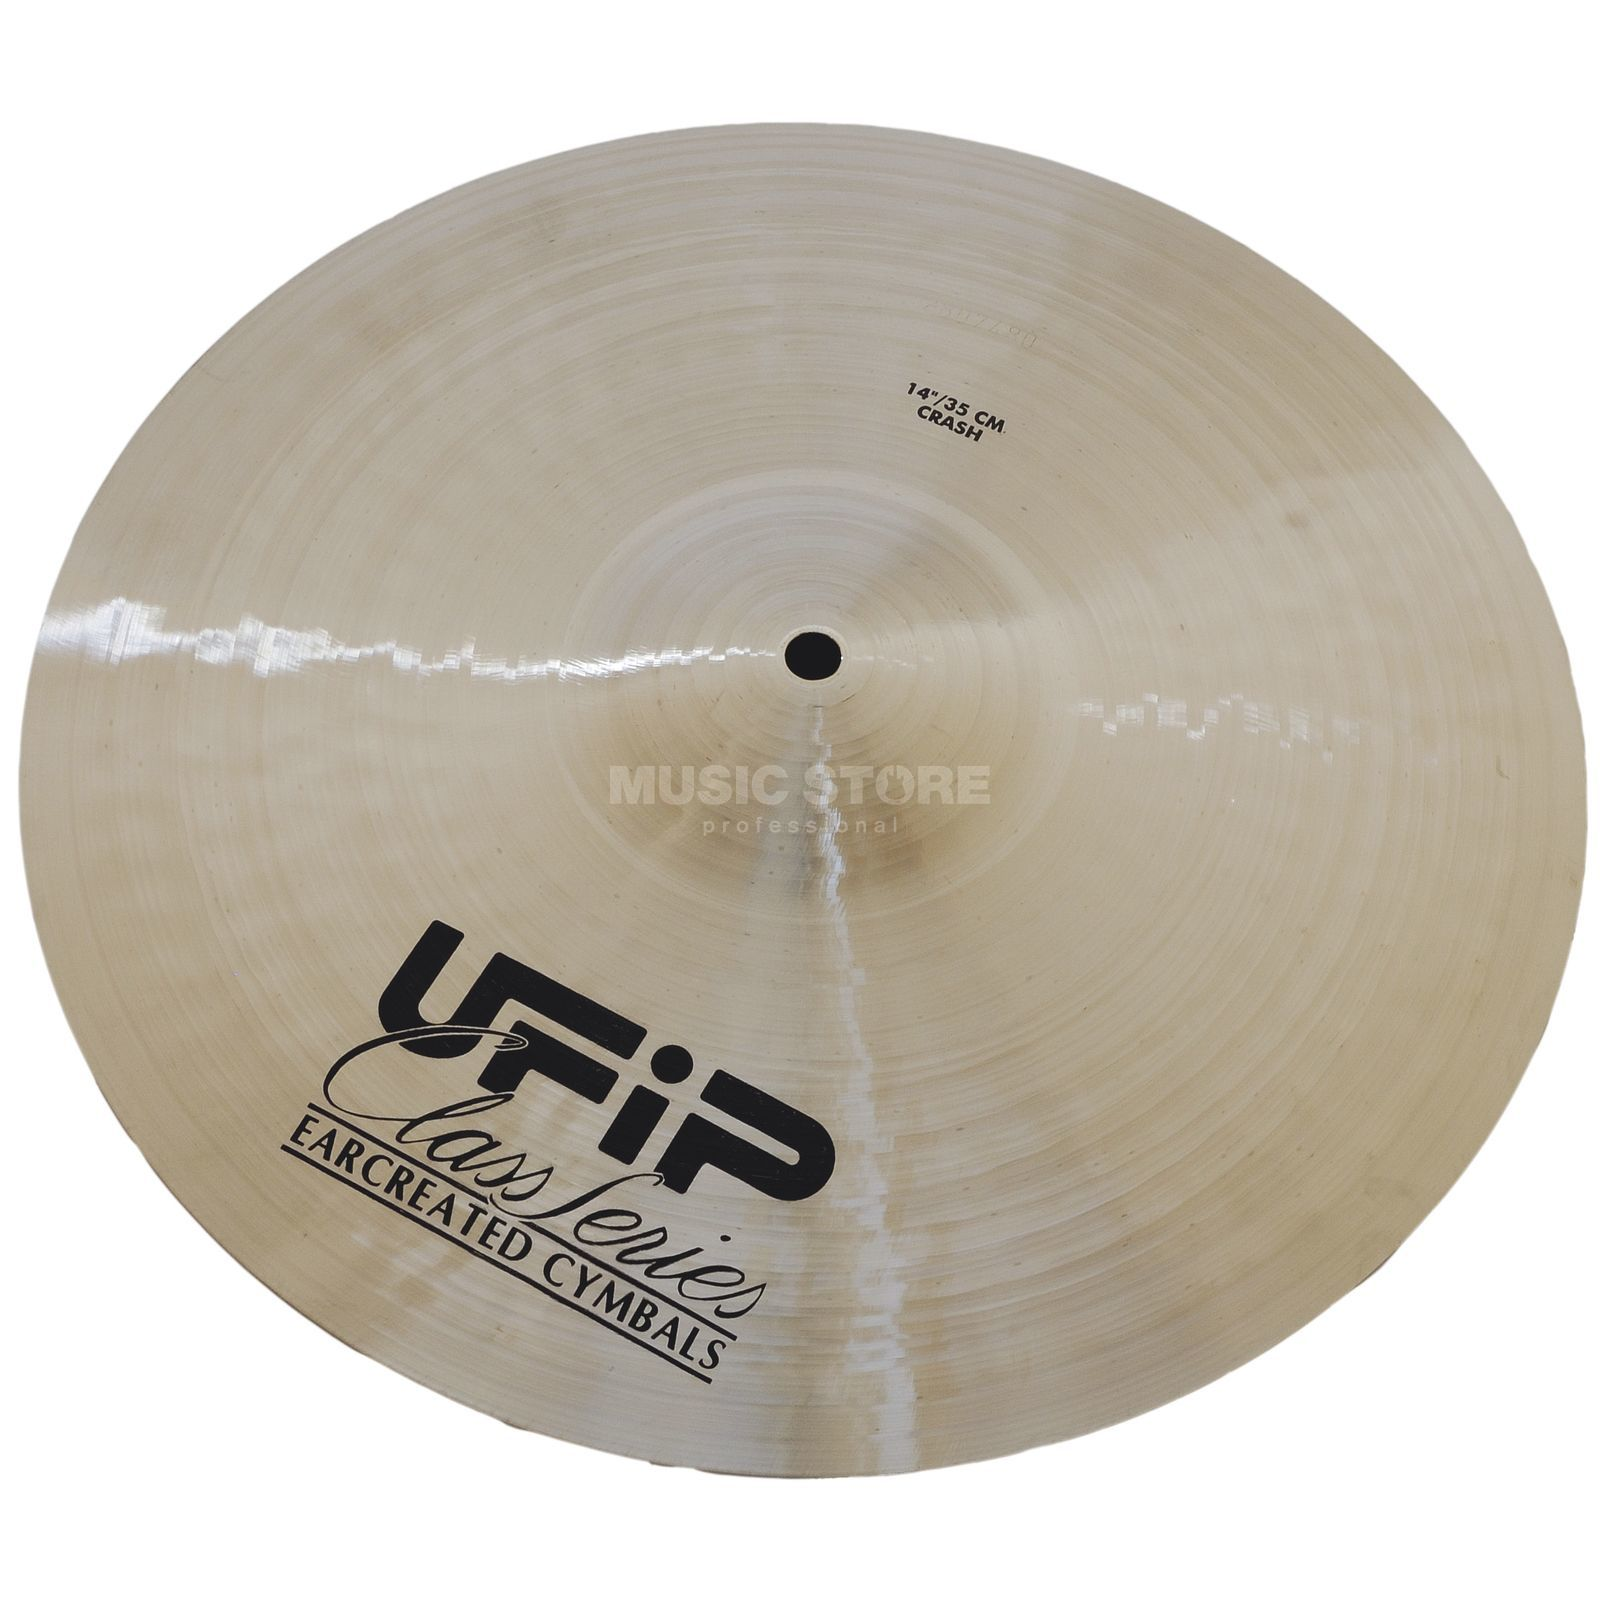 "Ufip Class Heavy Crash 18"", Natural Finish Zdjęcie produktu"